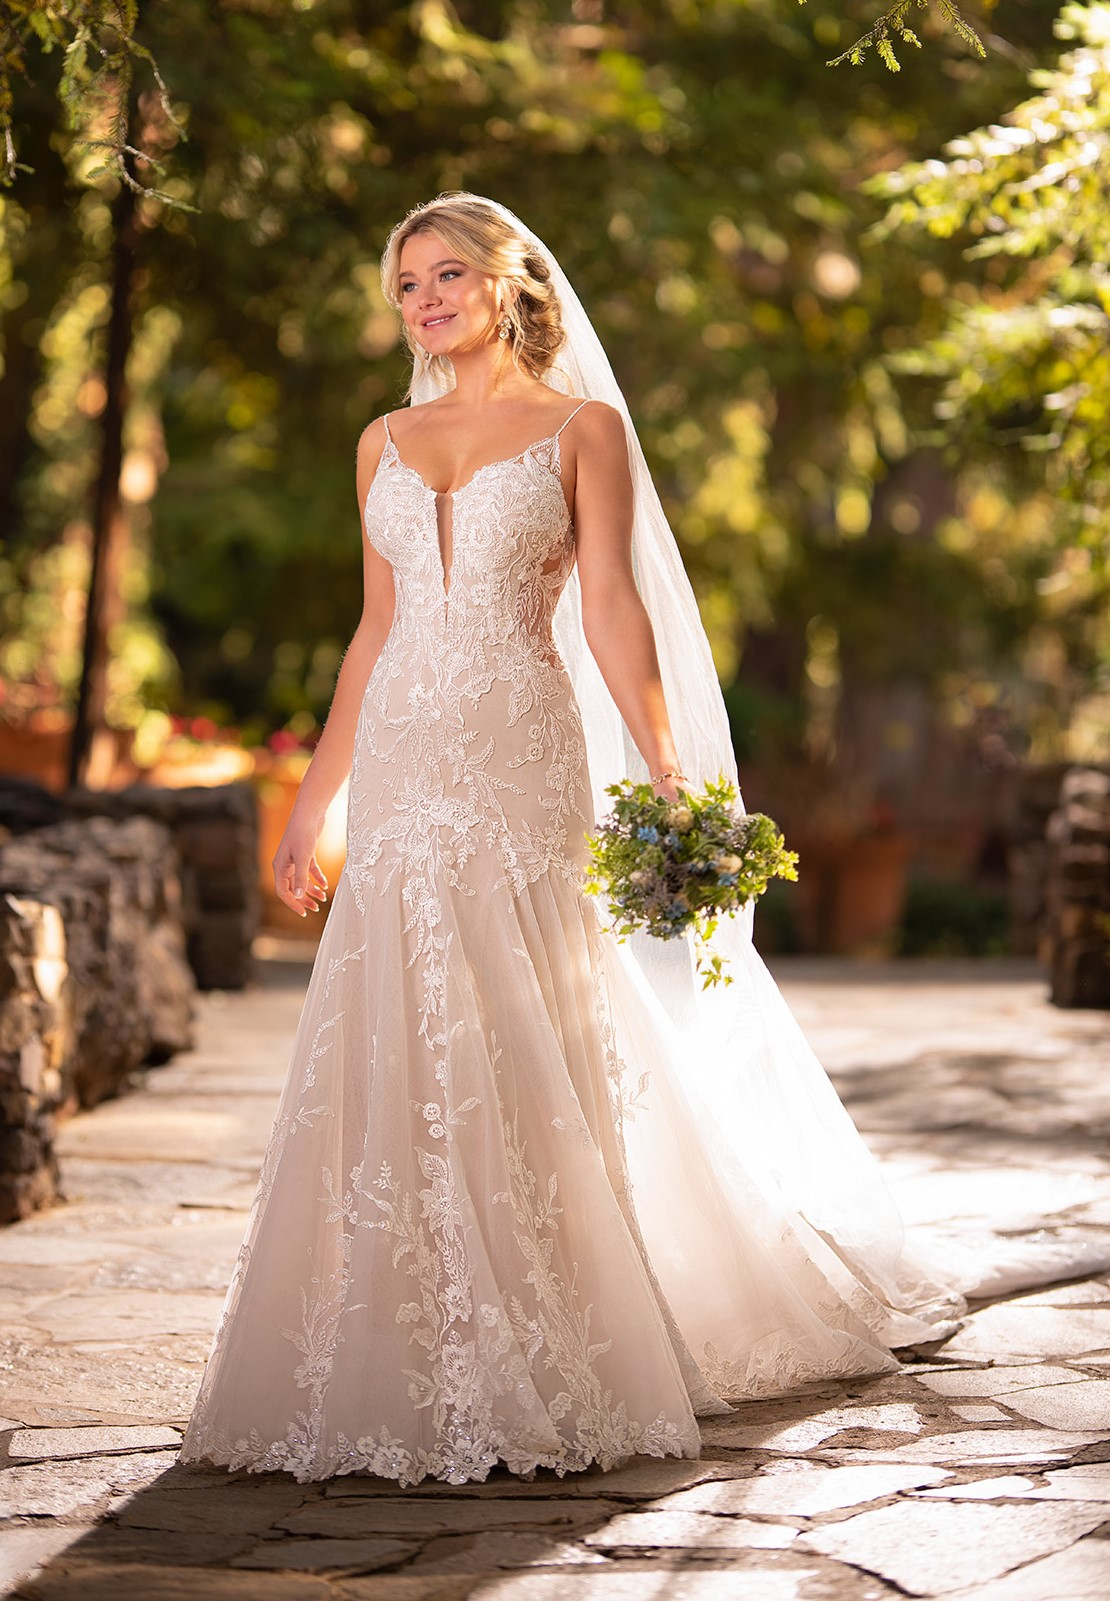 Love A Bridal Boutique Wedding Dresses Jacksonville Fl